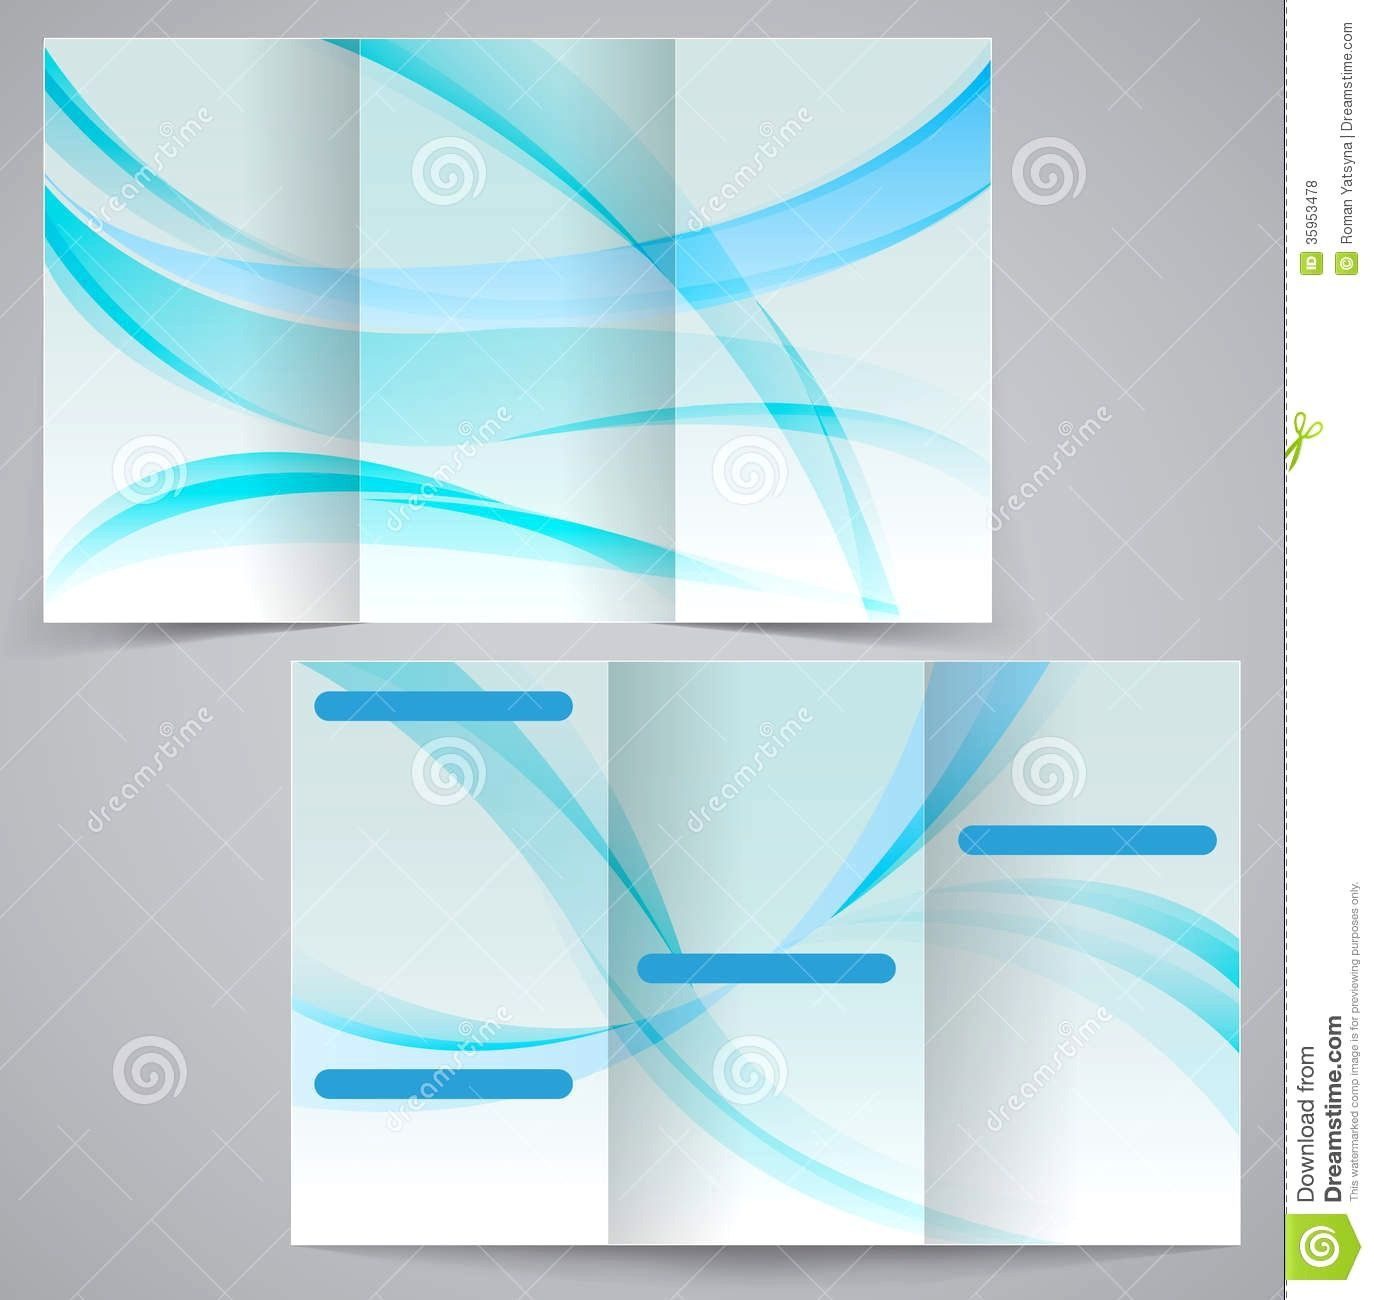 000 Amazing M Word Brochure Template Free Download Highest Quality  Microsoft 2007Full